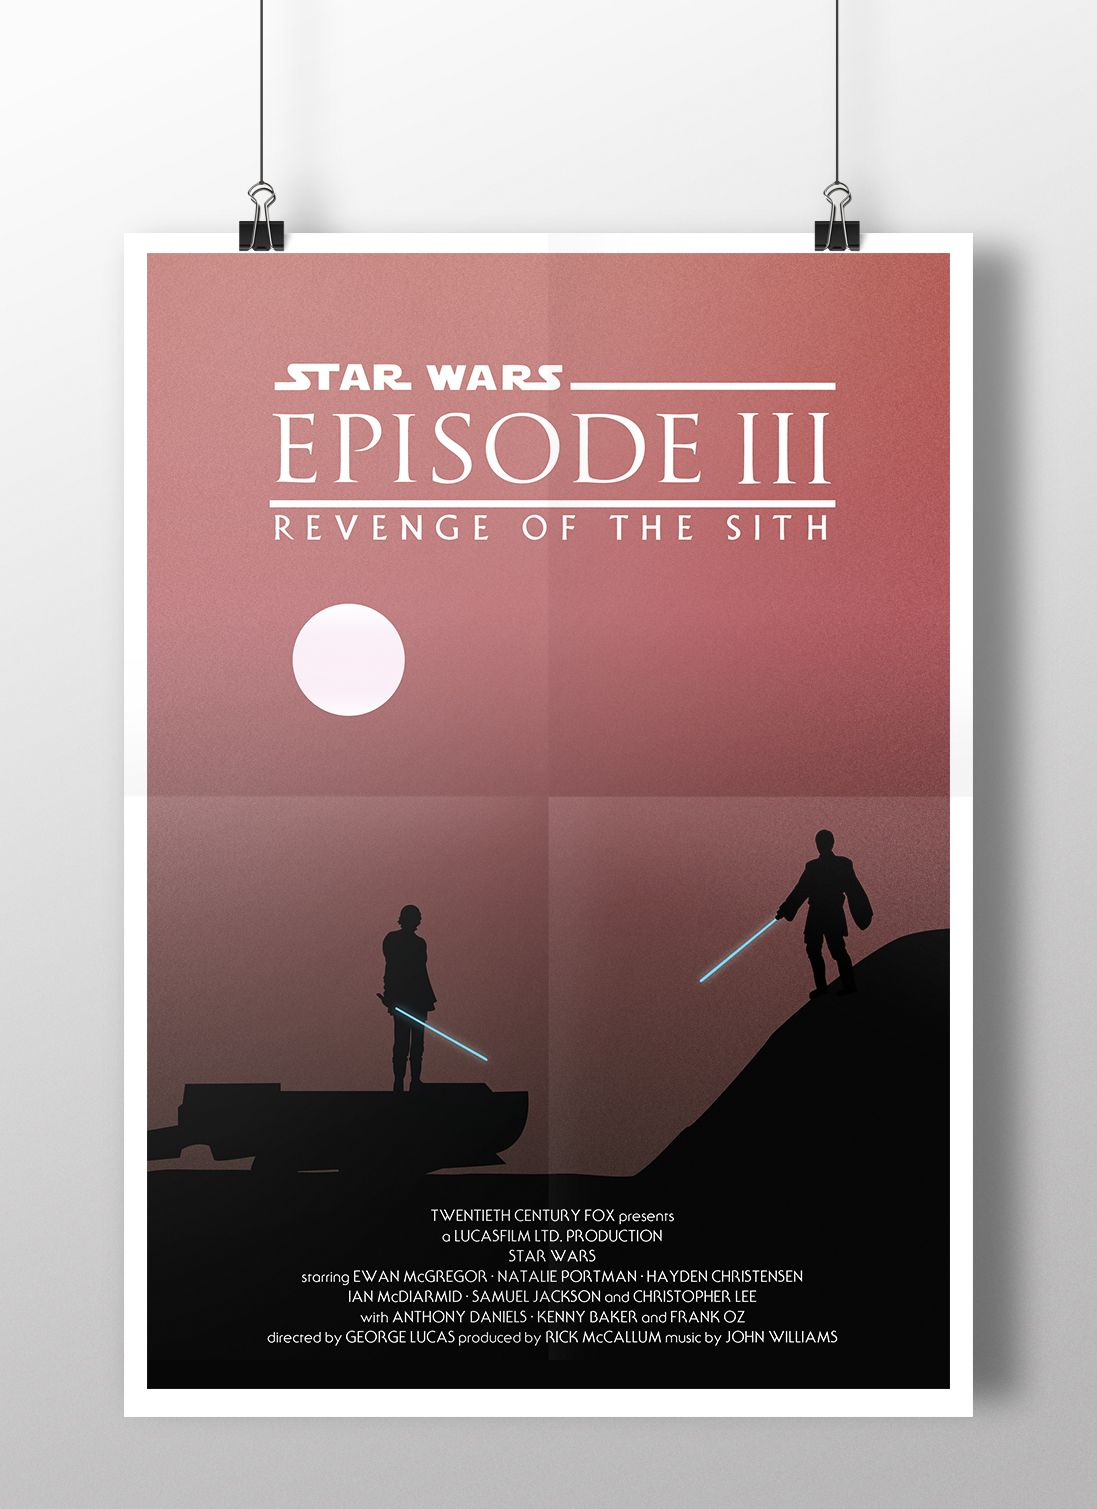 Episode Iii Revenge Of The Sith Minimalist Poster By Joe Elam Starwars Illustration Mustafar Episod Minimalist Poster Freelance Graphic Design Fan Poster